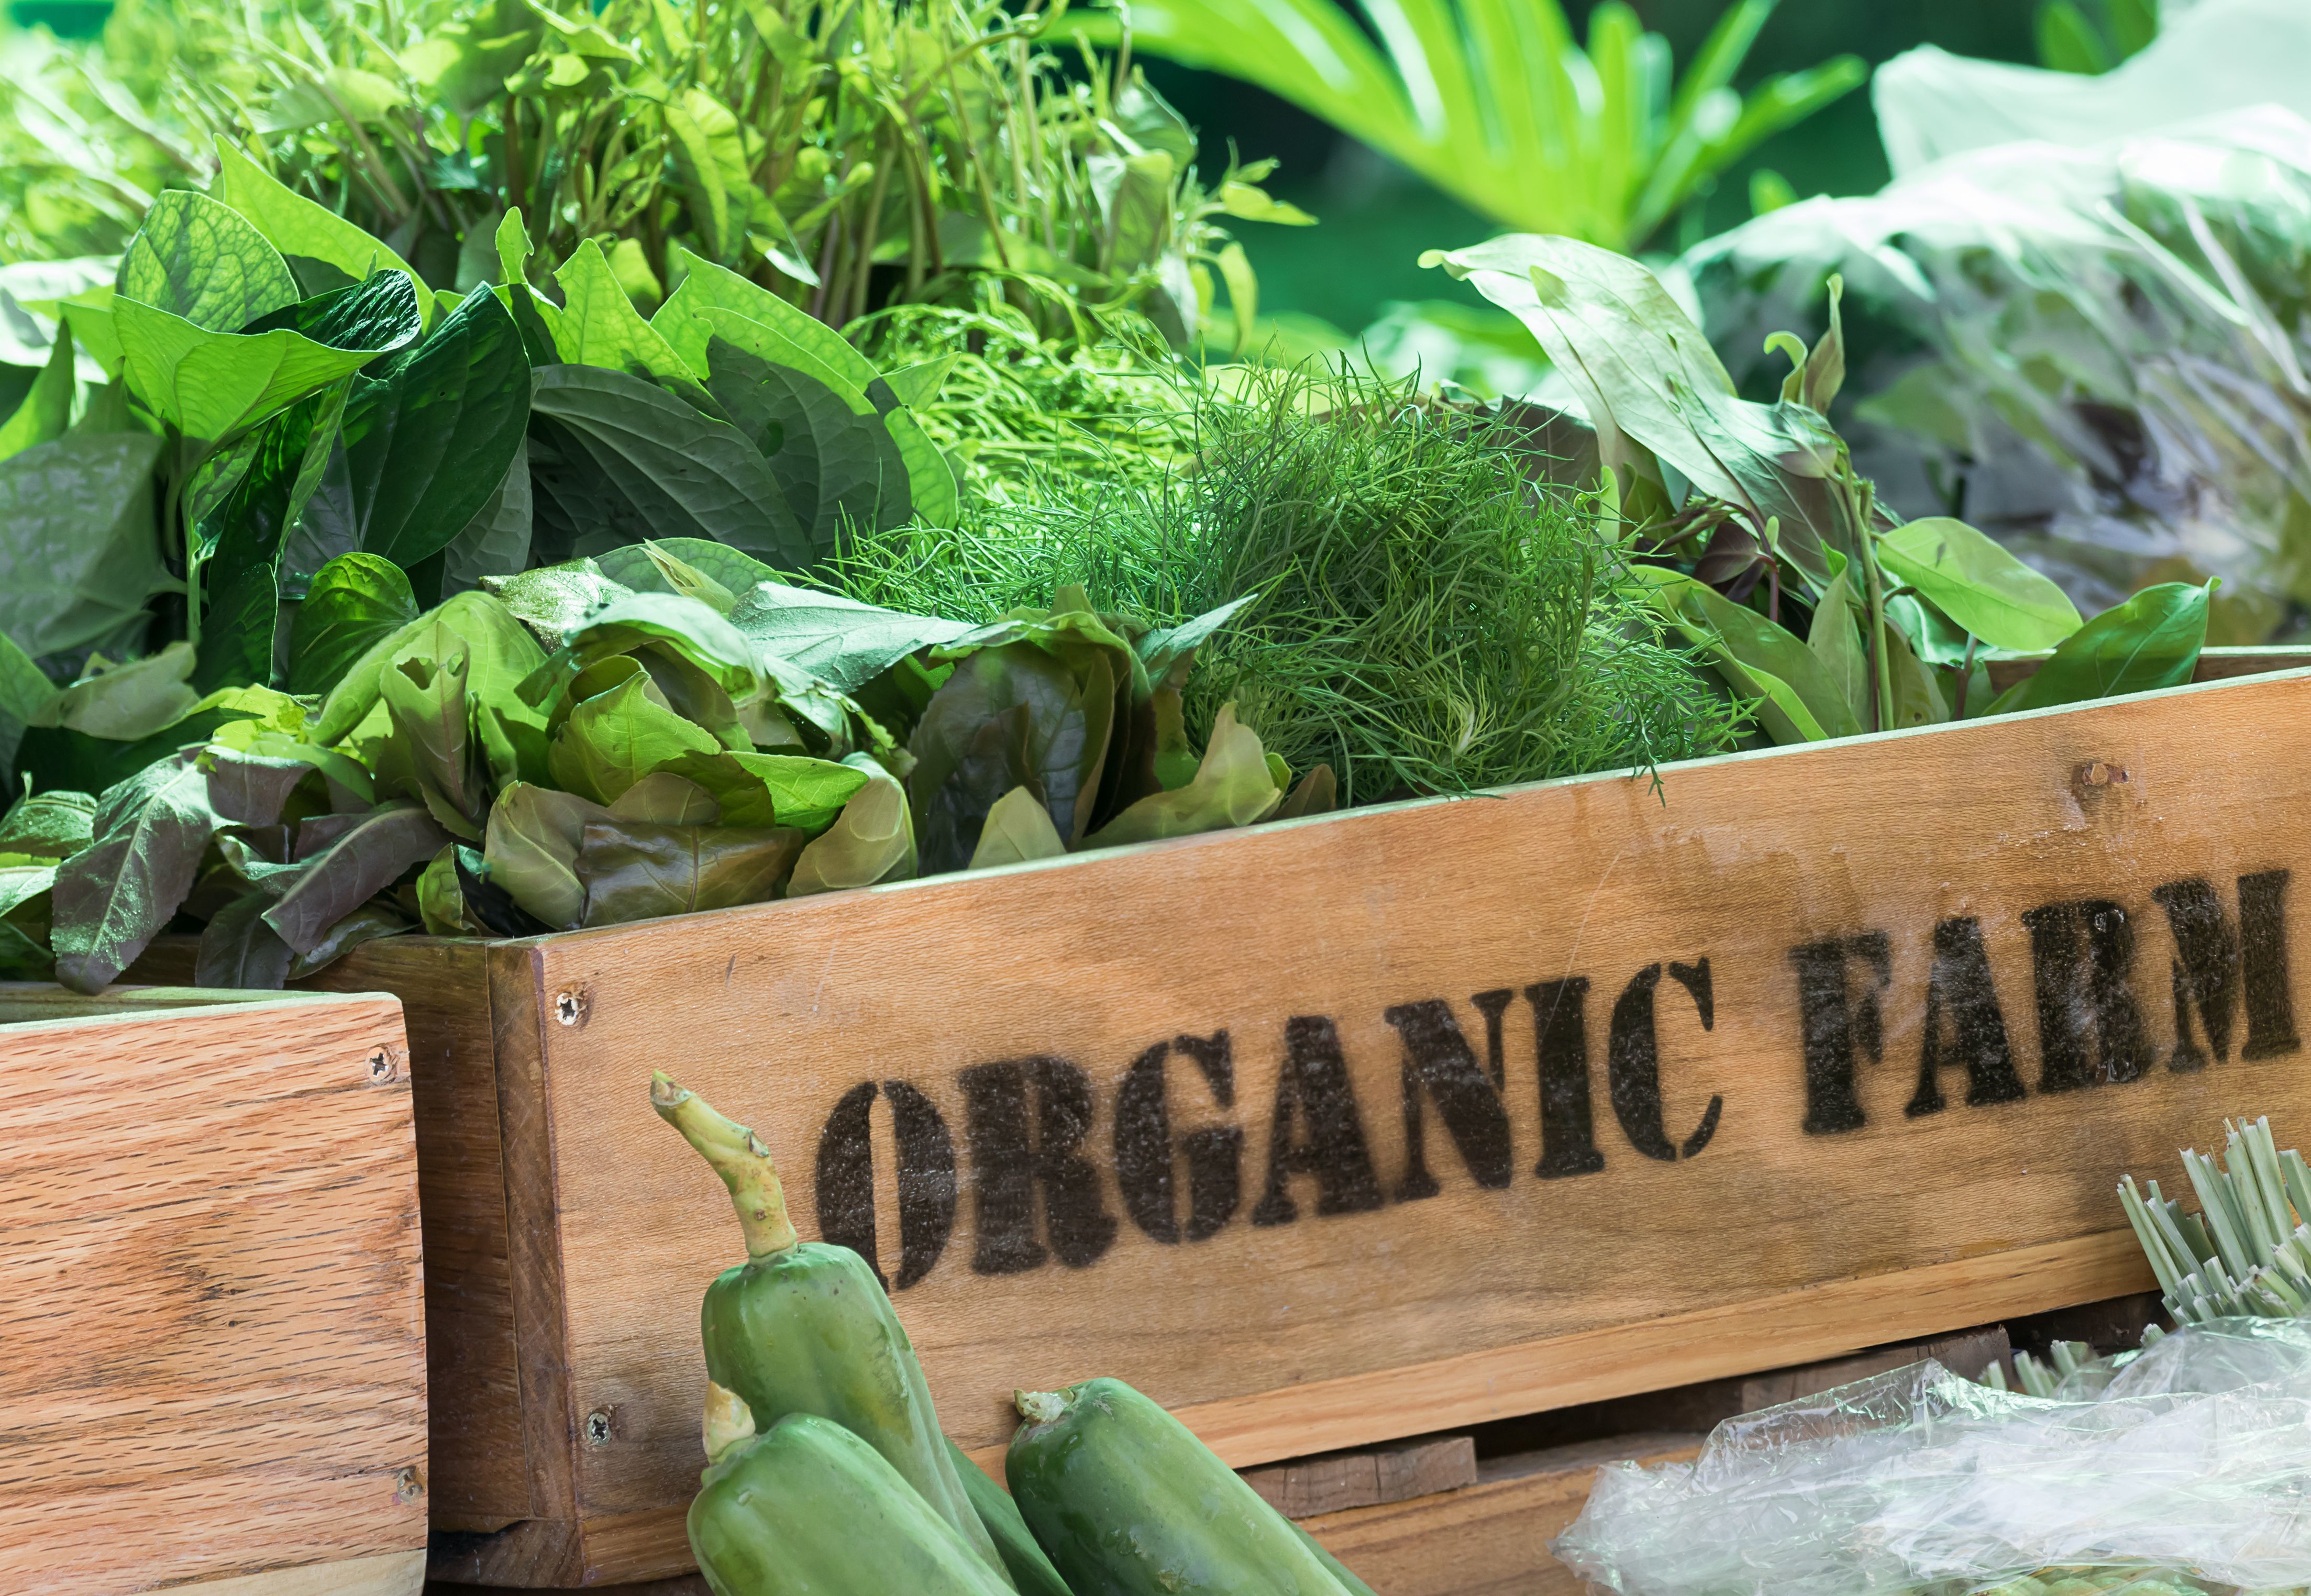 A wooden box, containing vegetables. On the side is written 'ORGANIC FARM@